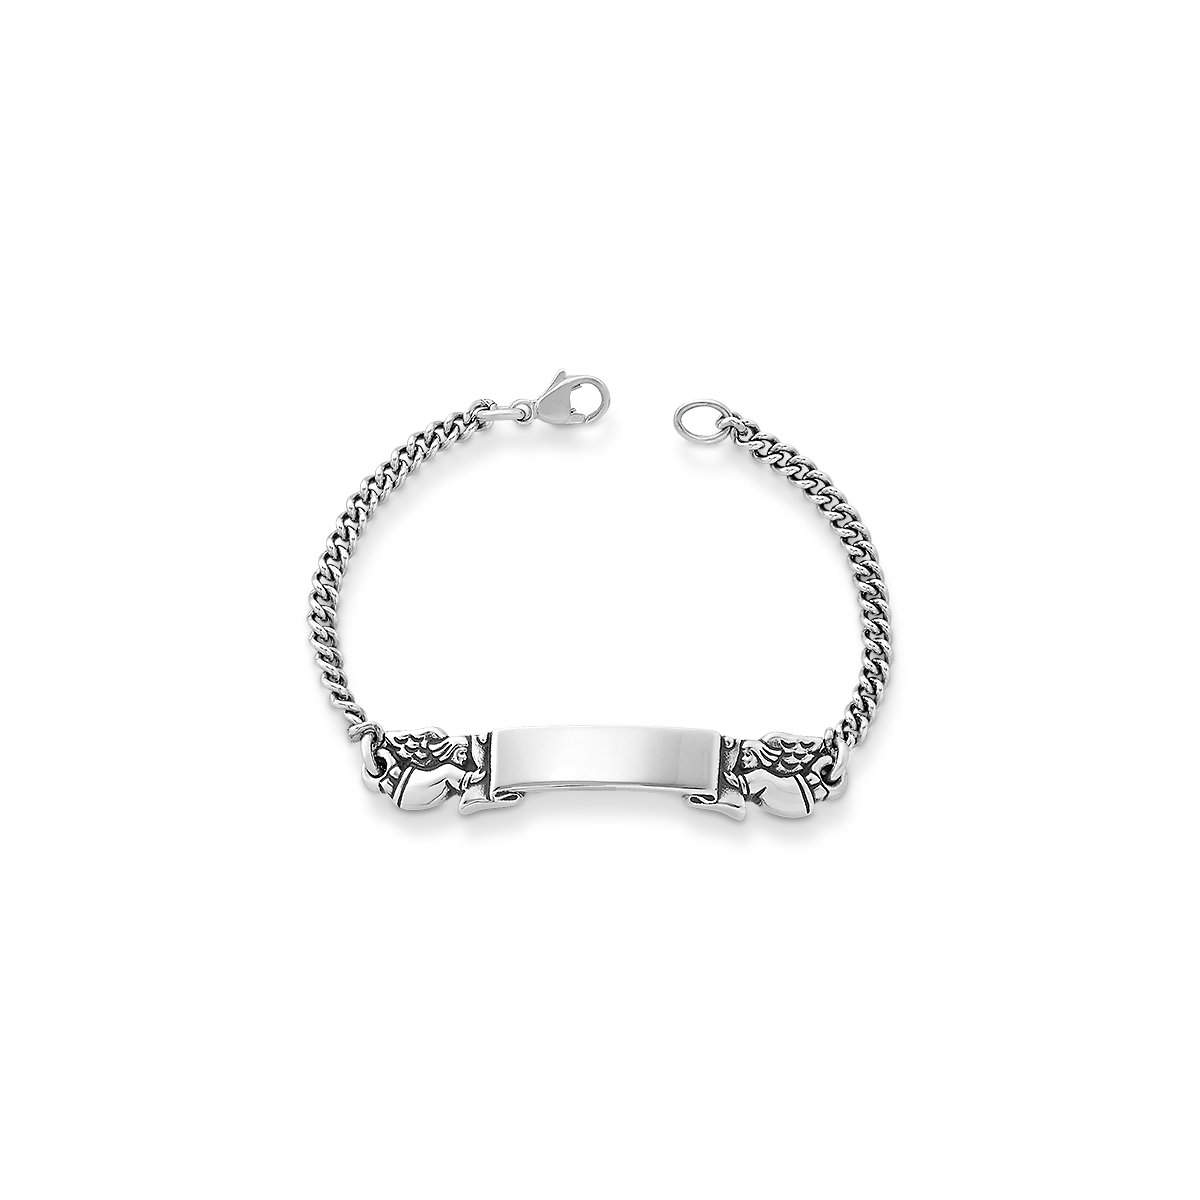 James Avery Bracelets For Men Best Bracelets